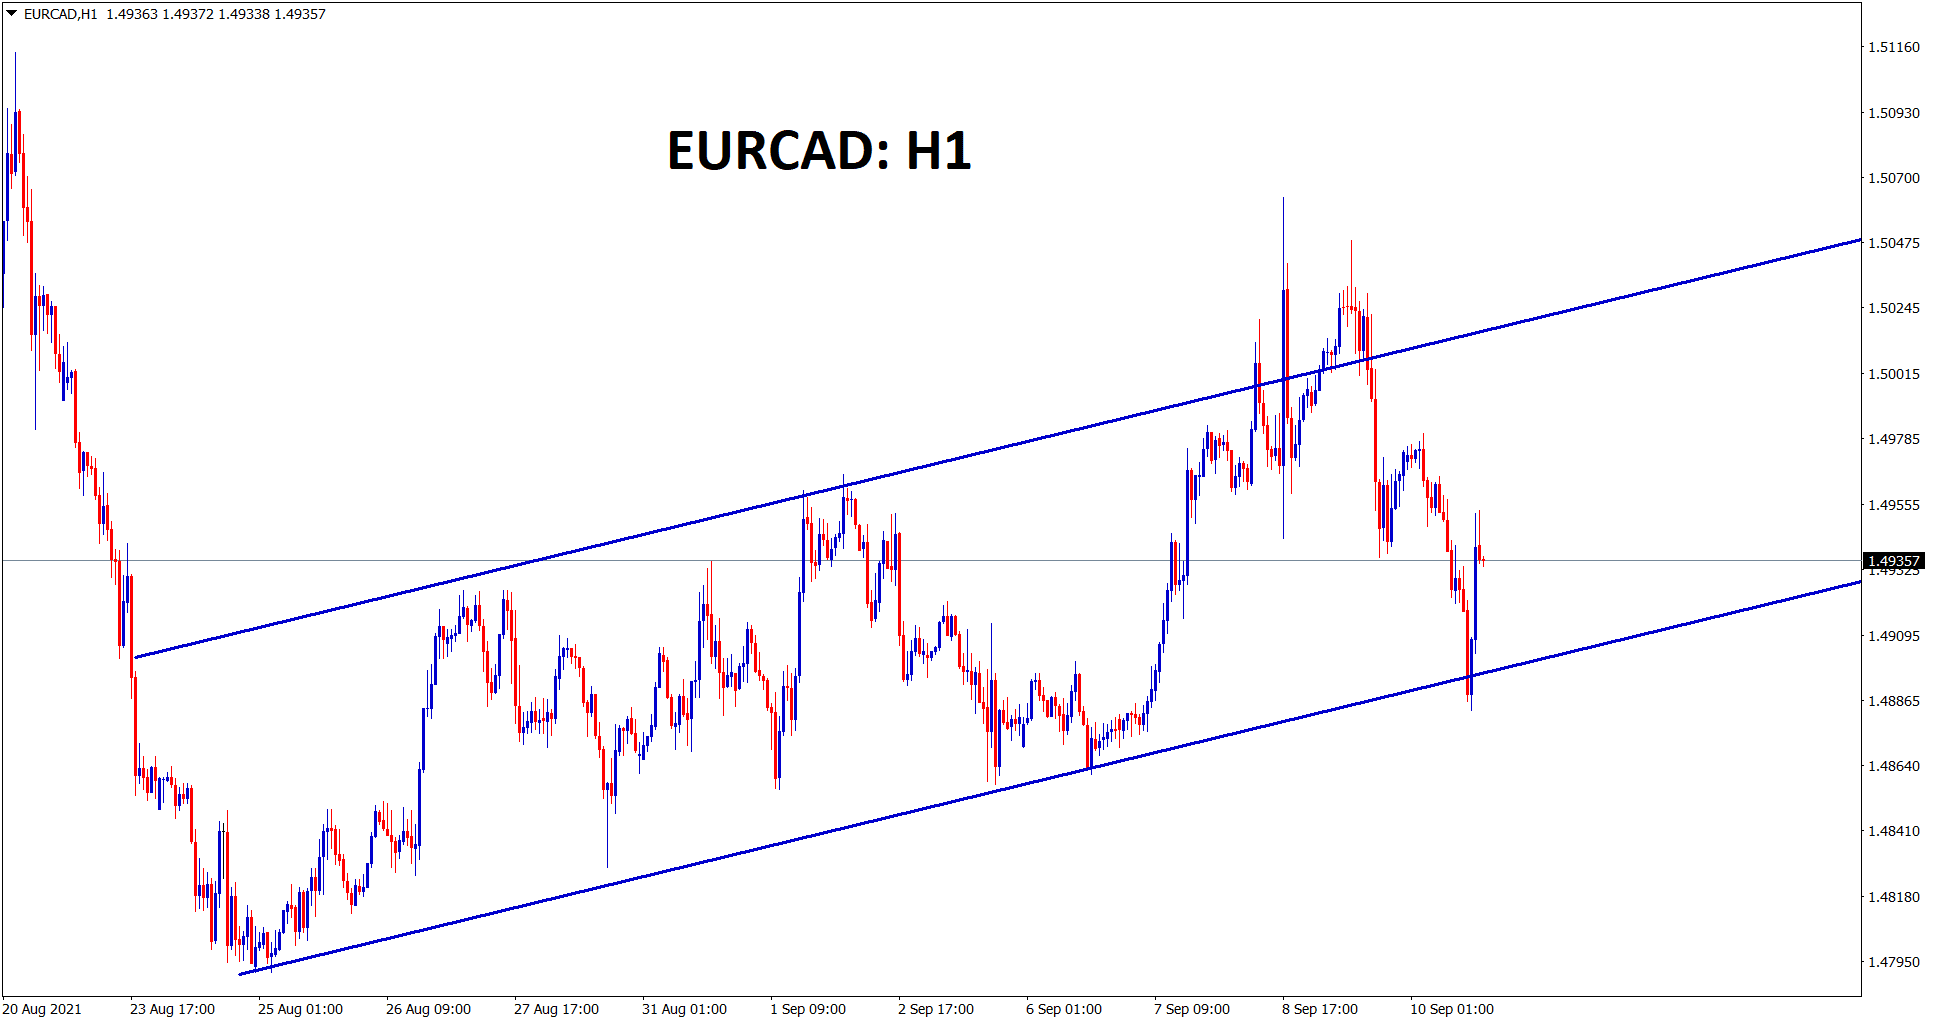 EURCAD is moving in an Ascending channel